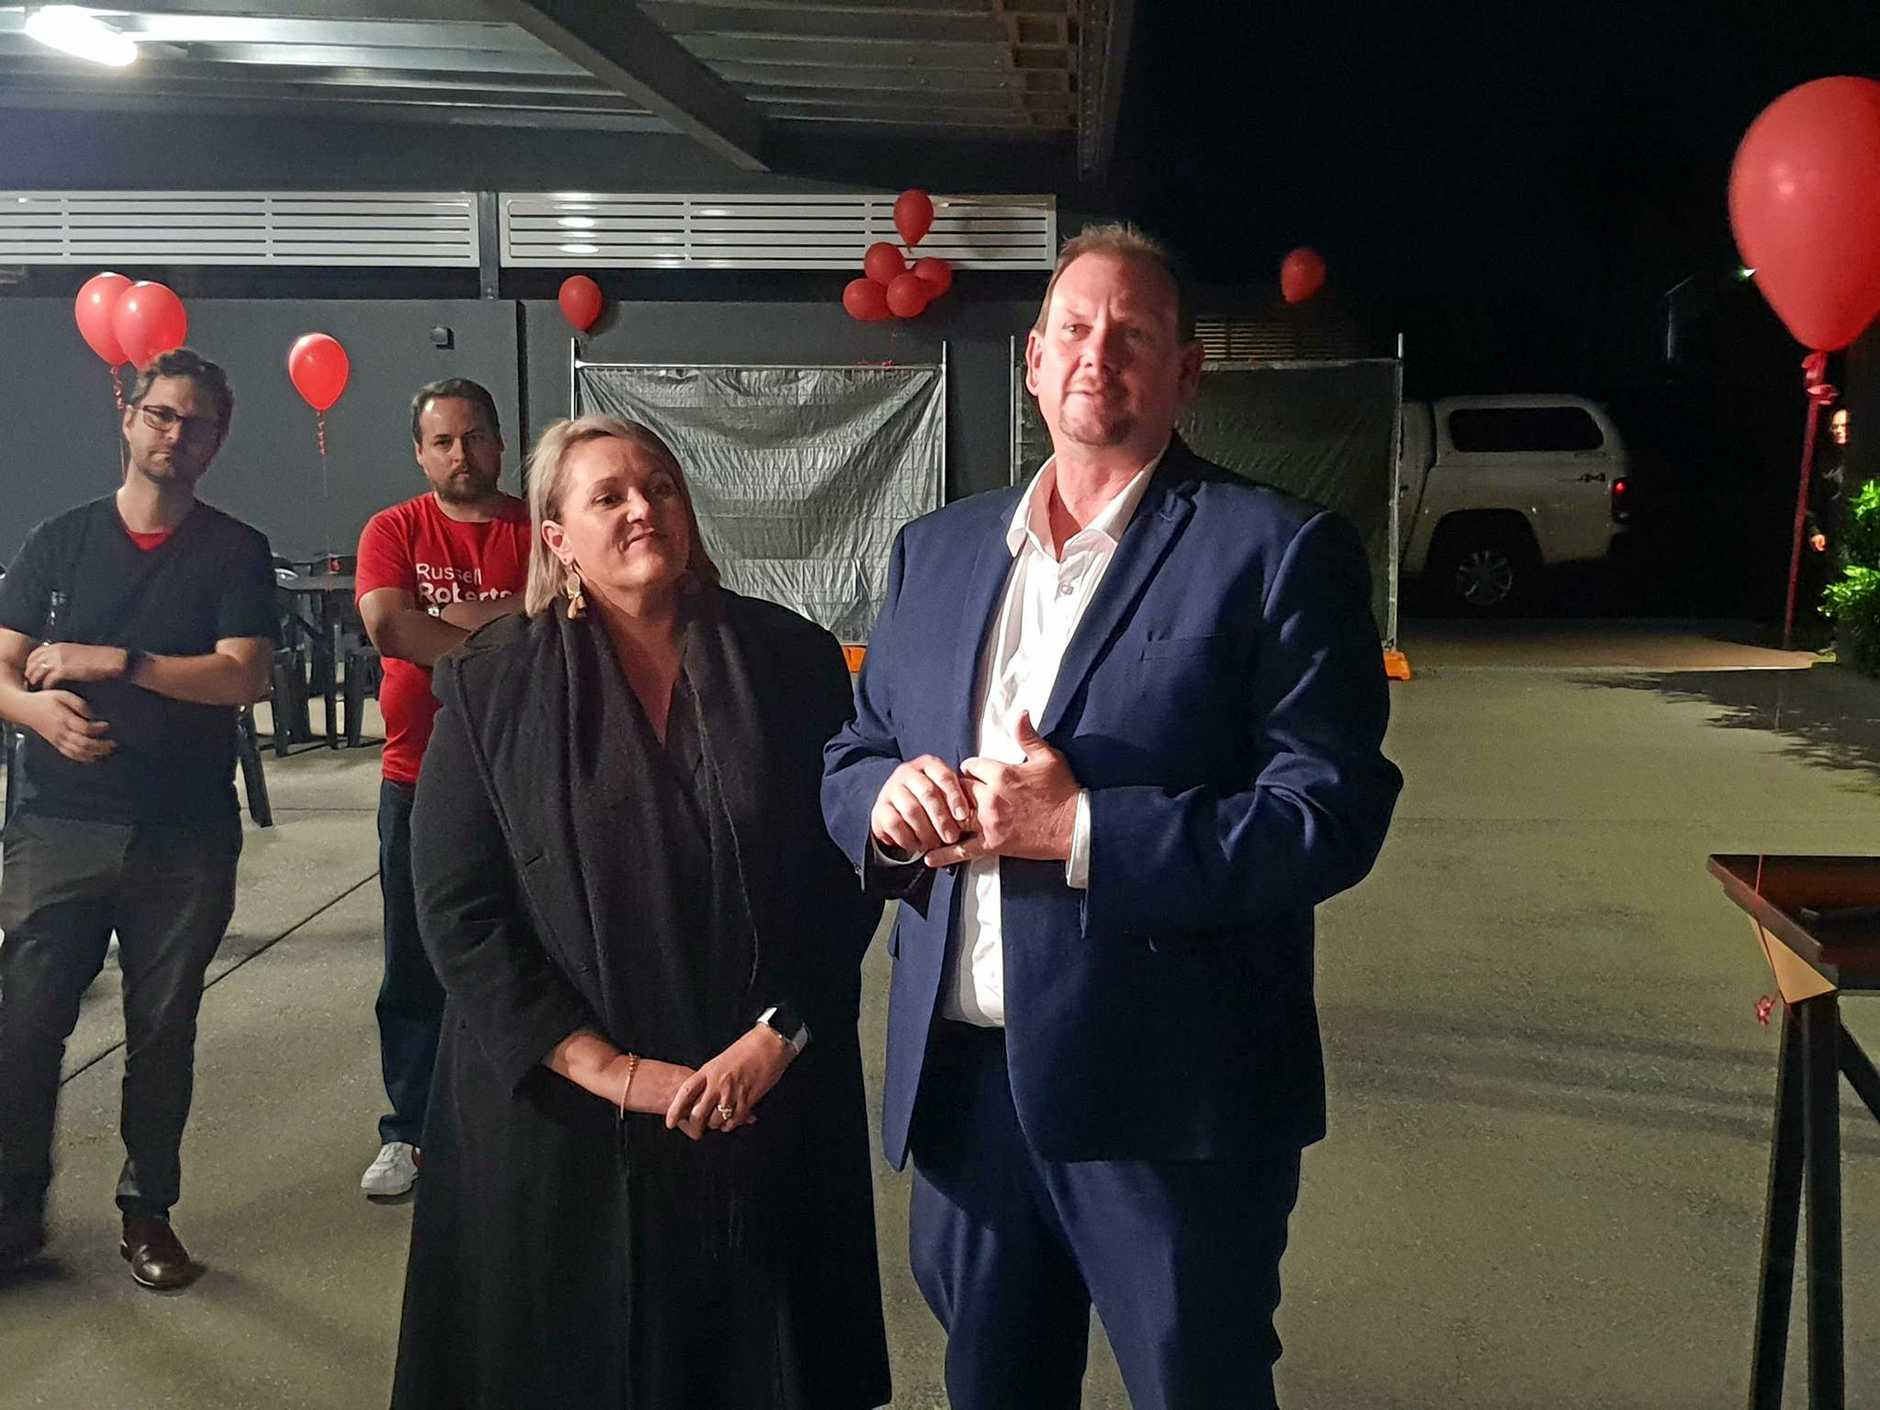 LABOR HEARTBREAK: Labor's candidate for Capricornia Russell Robertson with his wife Denise in conceding.